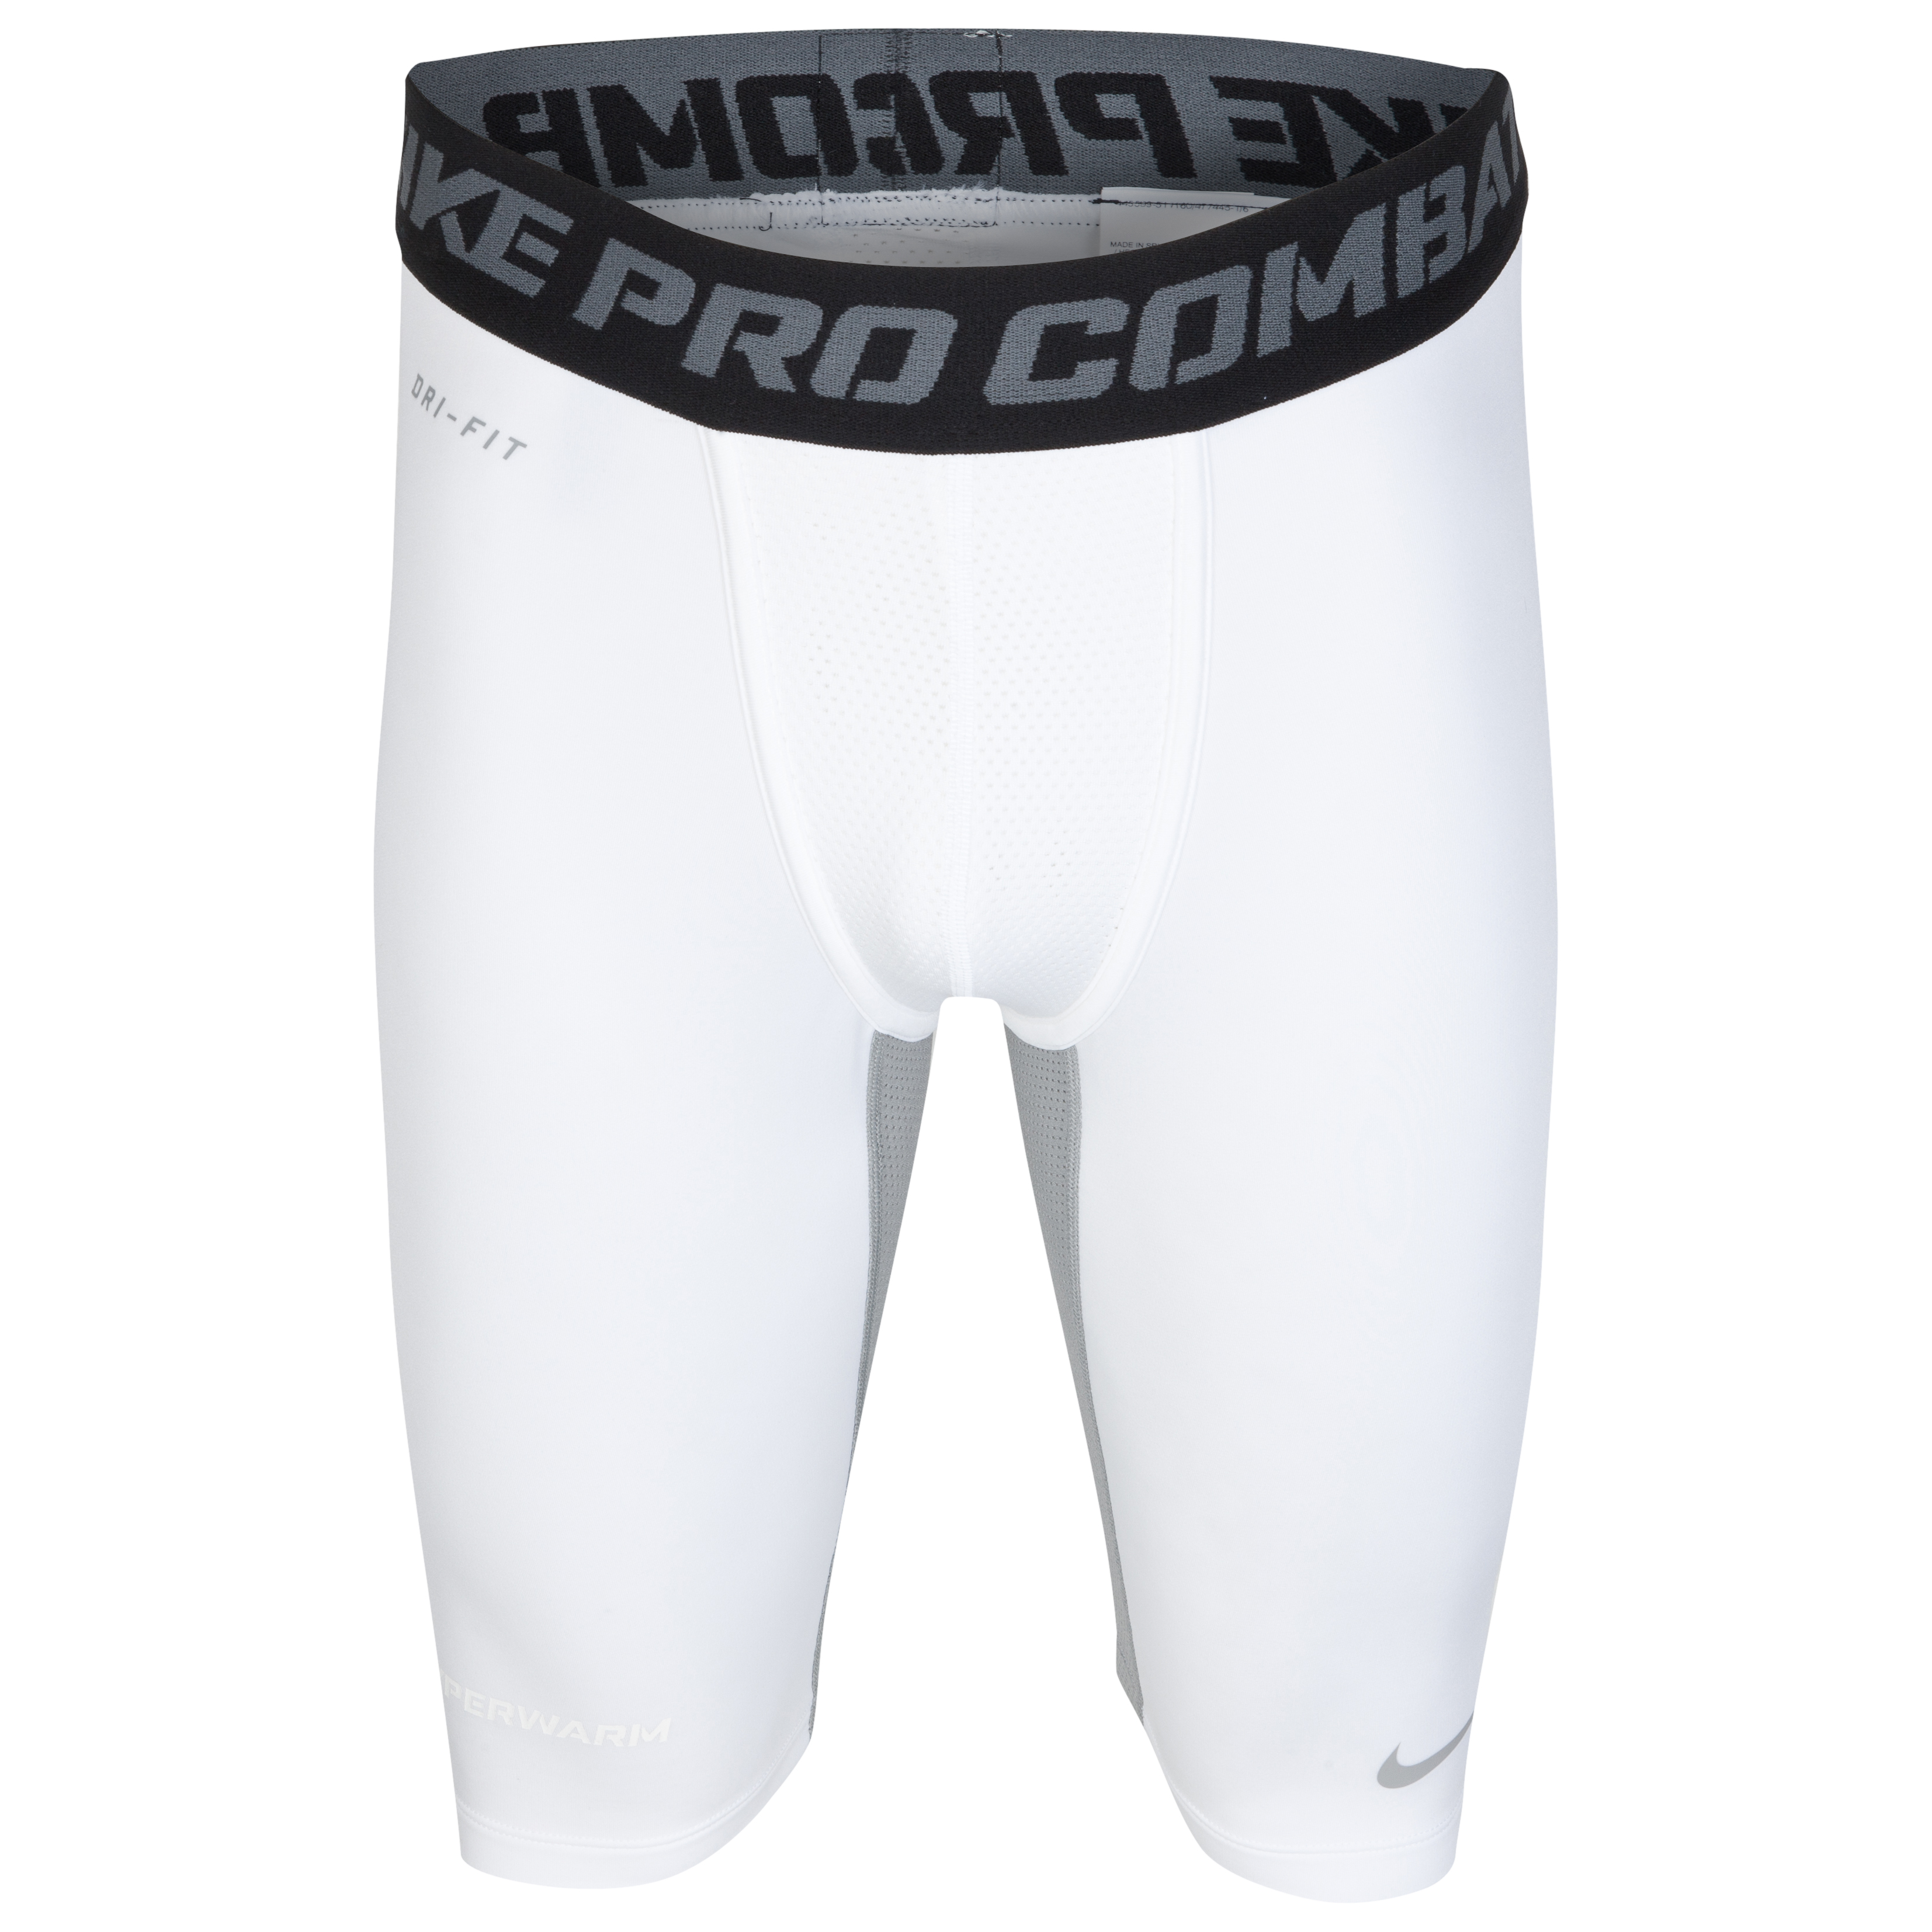 Nike Hyperwarm Hydpull Comp Short - White/Matte Silver/Matte Silver